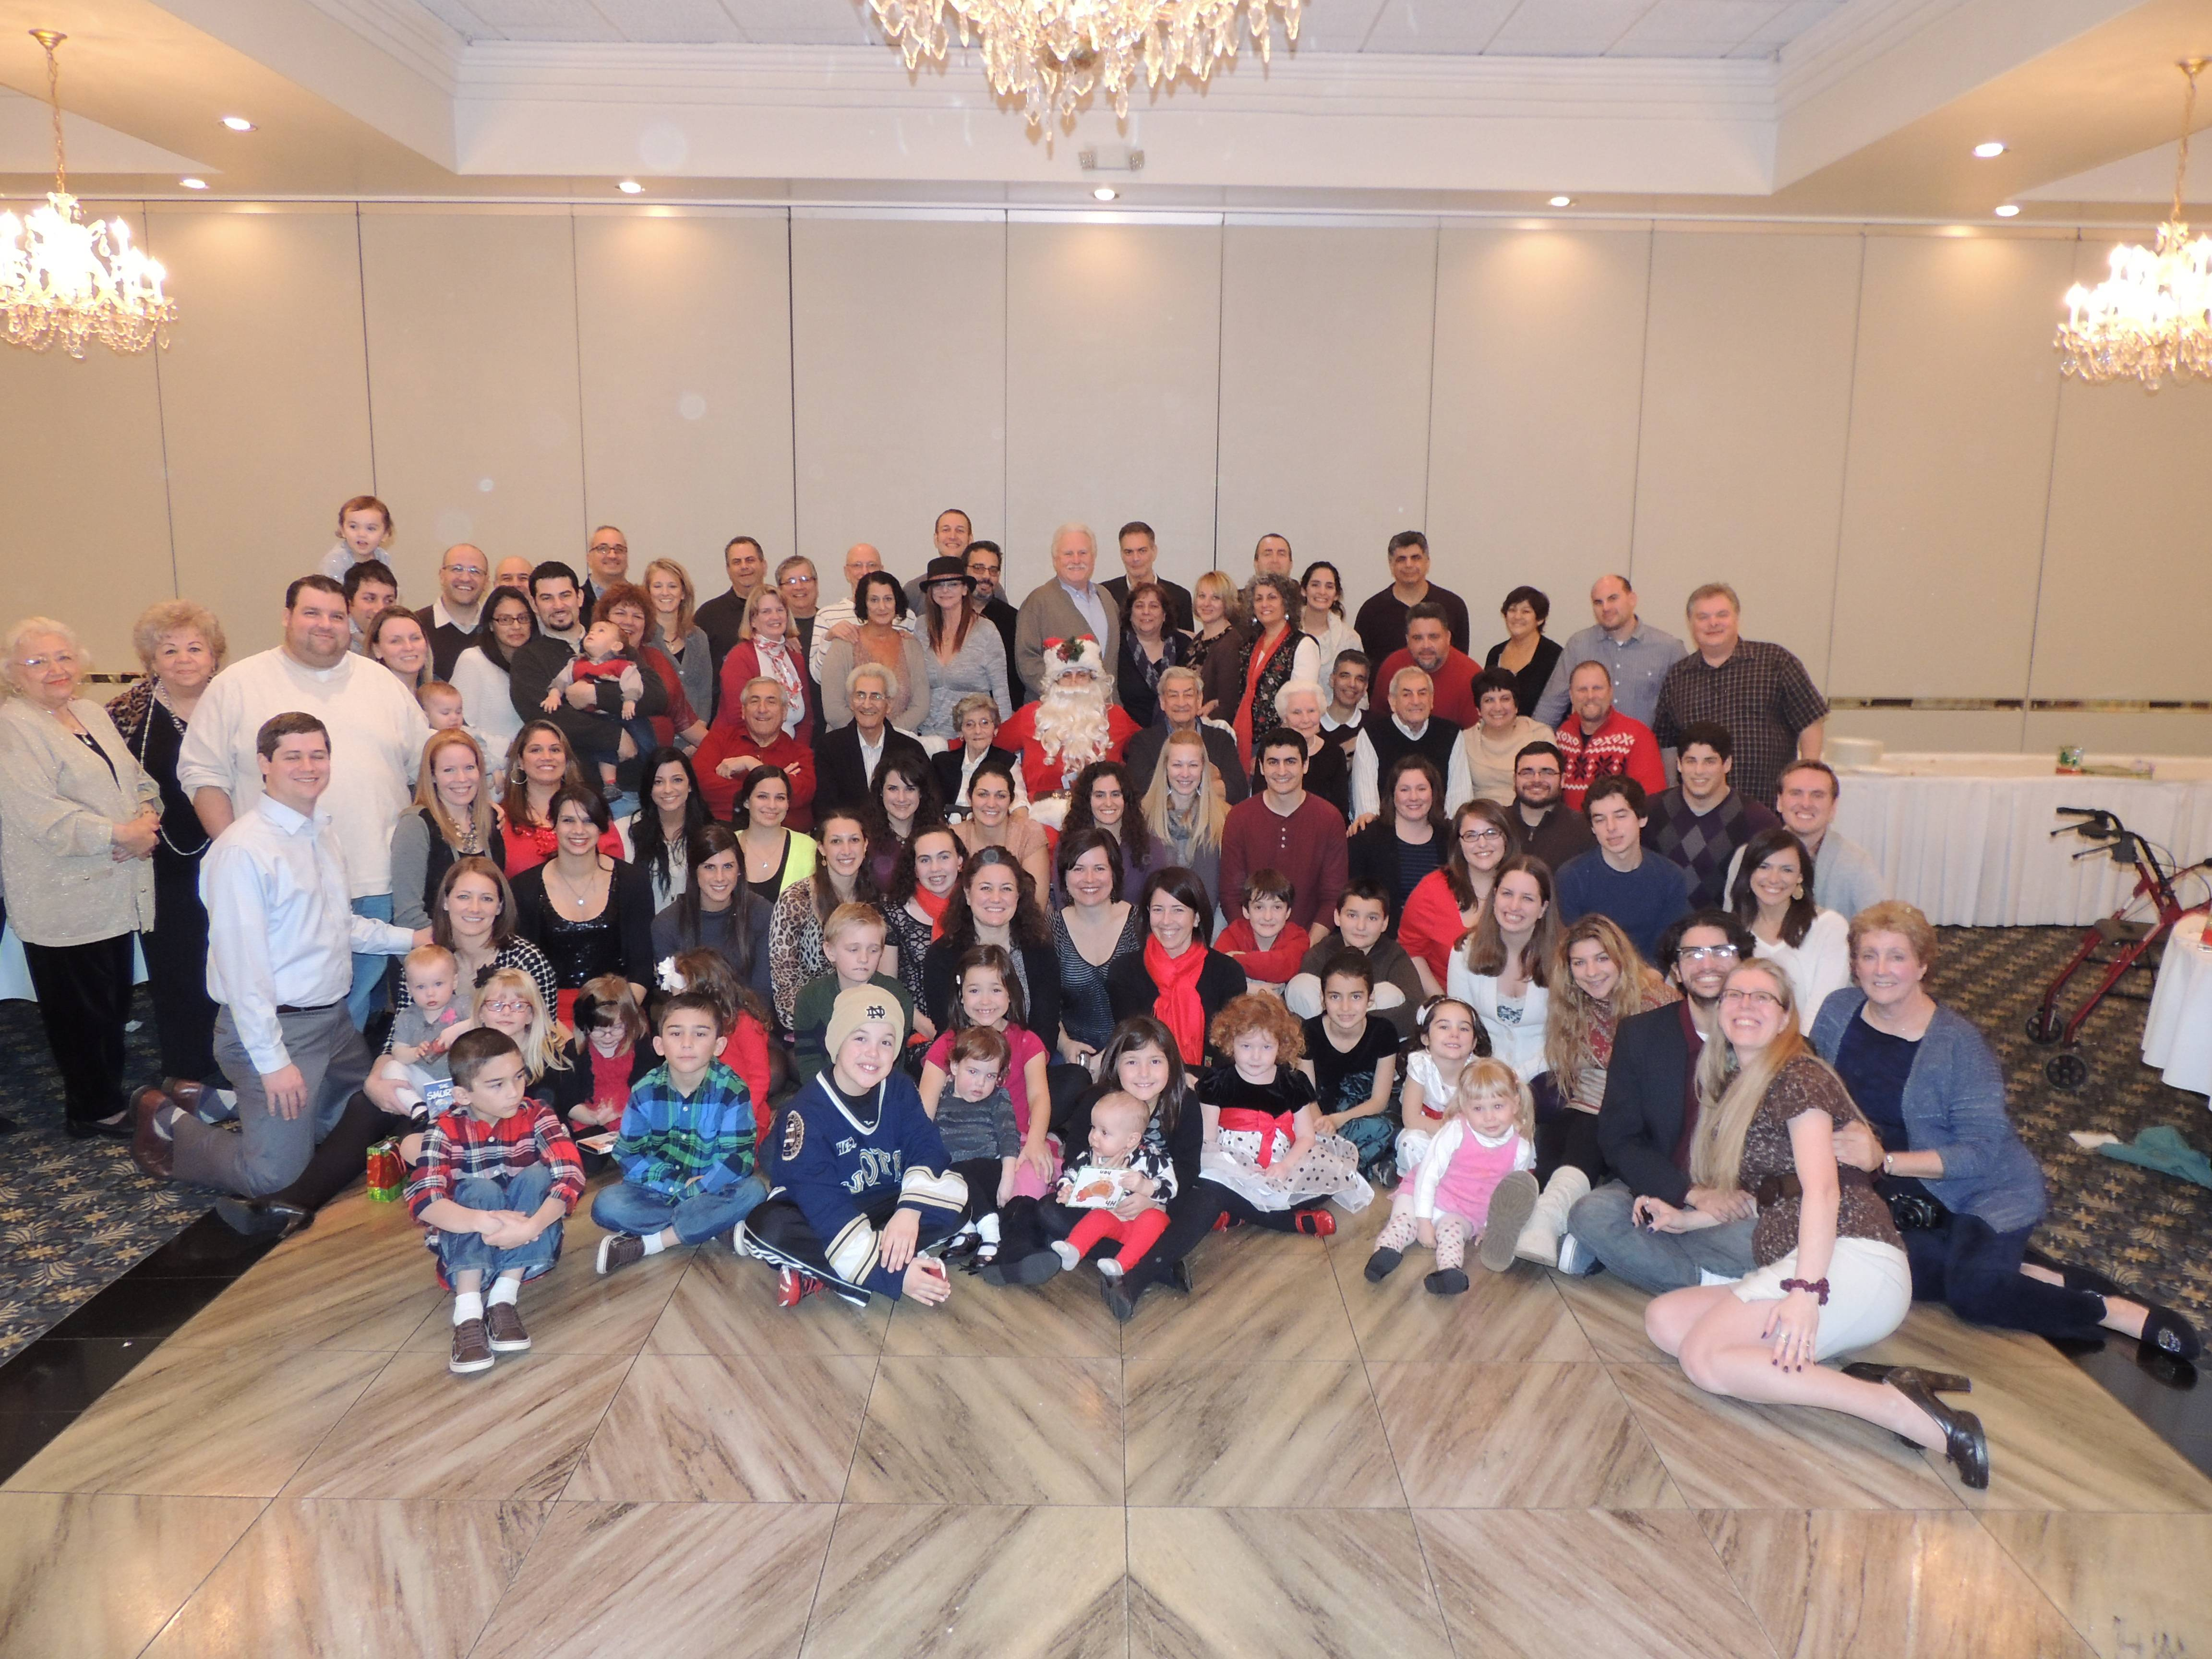 Begun in 1956 as a way to celebrate Christmas together with their growing families, the 57th annual Lupo Family Christmas Party was held on December 22, 2013 at Alta Villa Banquets in Addison.